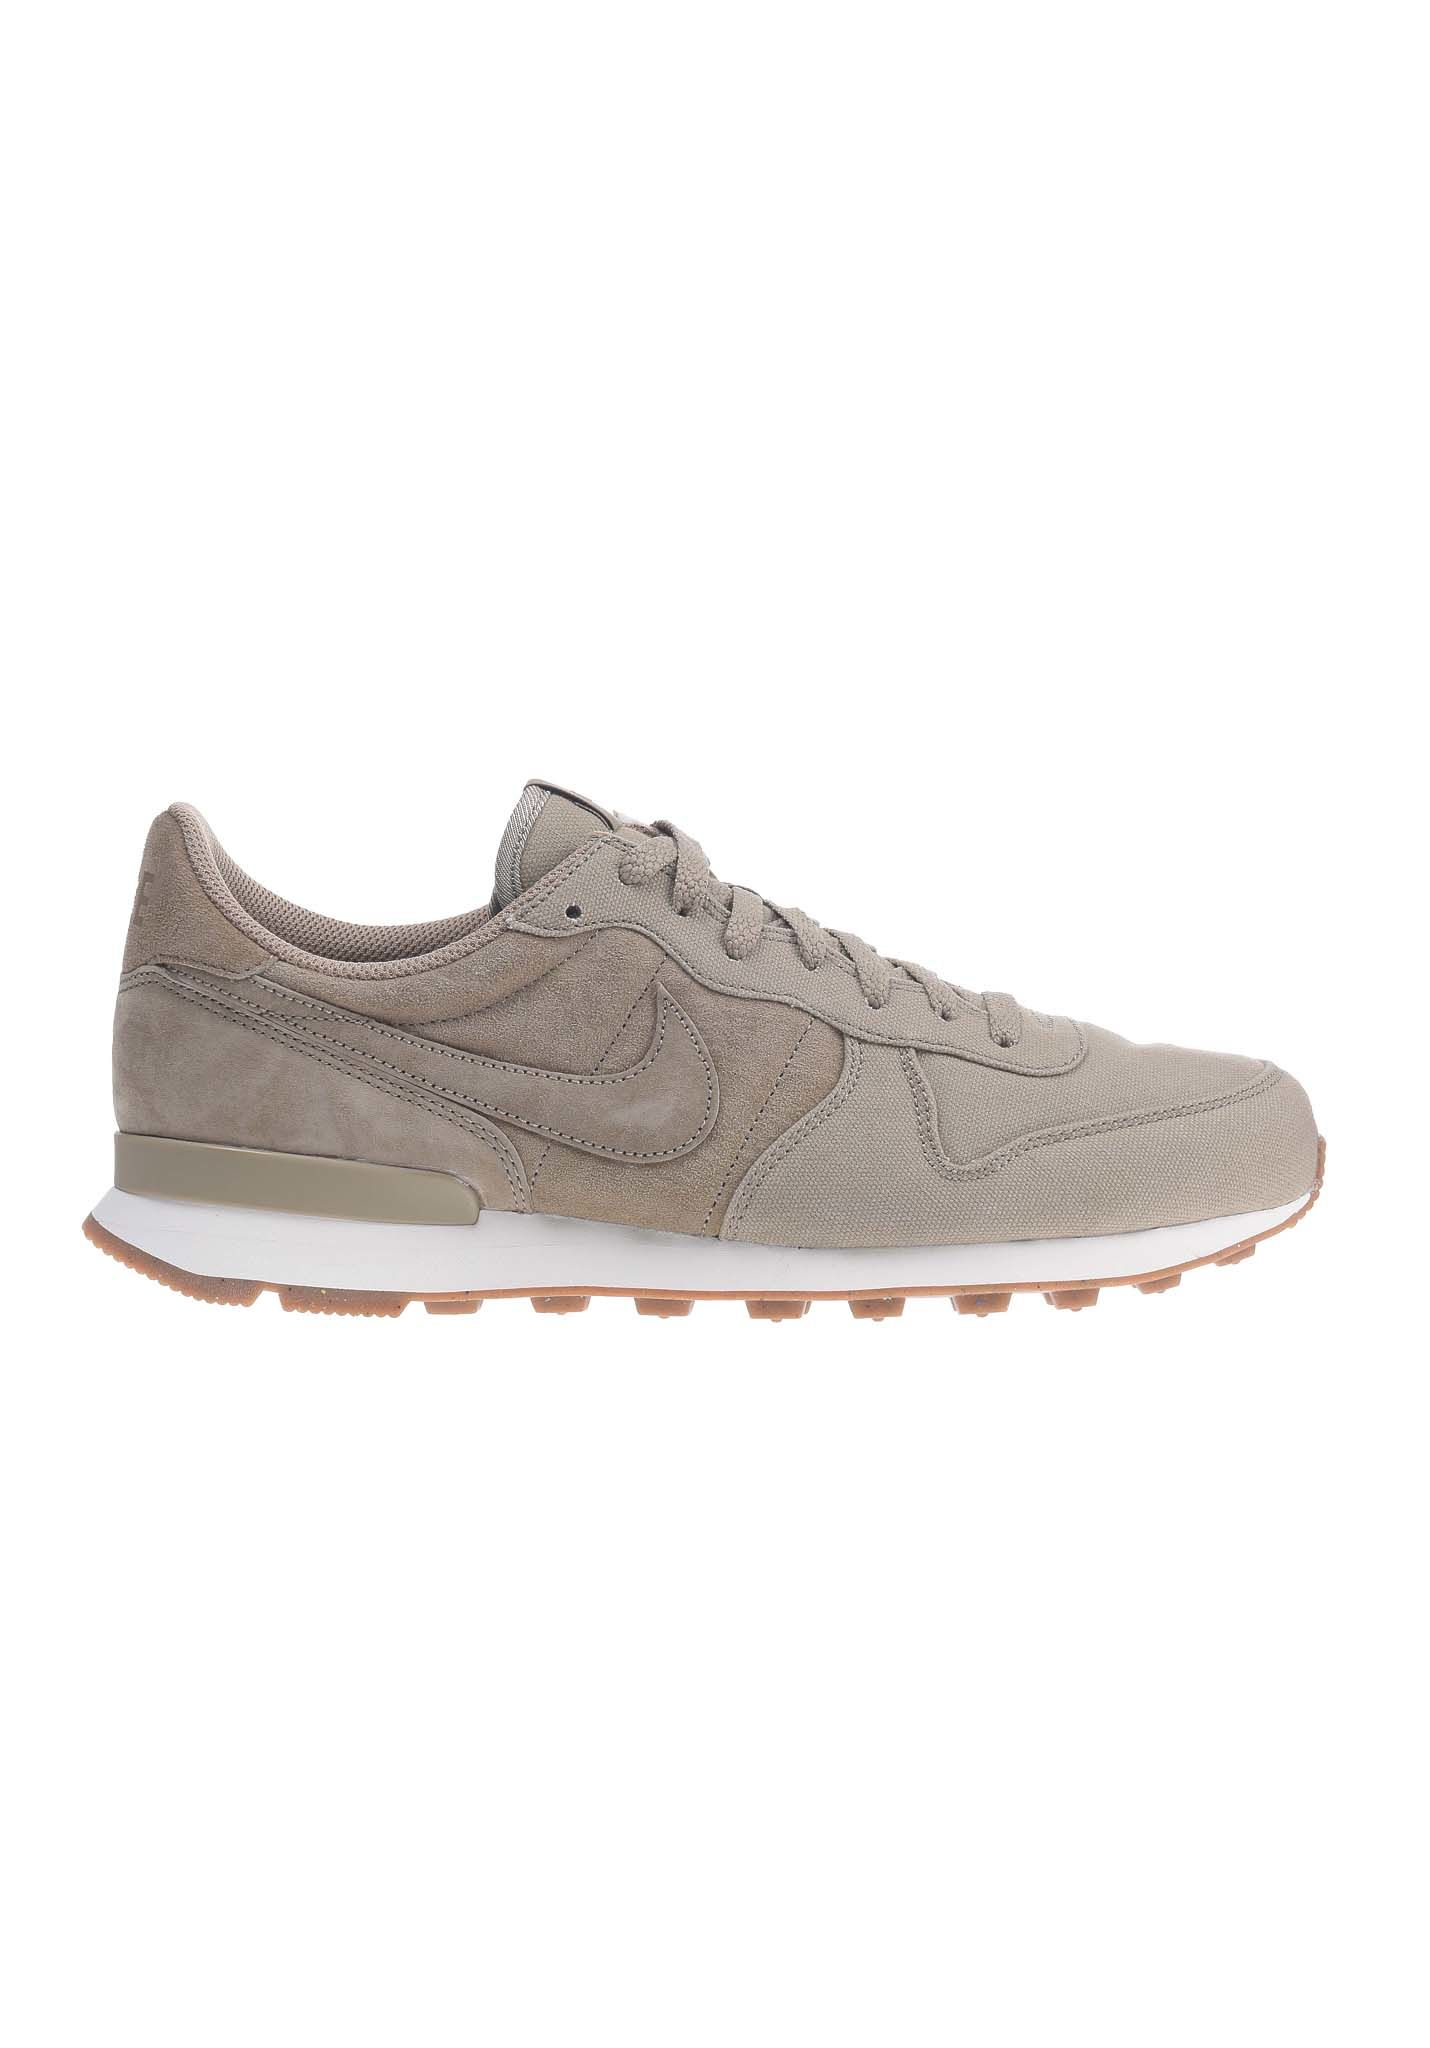 Premium internationalist sneakers Nike MvpvK3PeYG